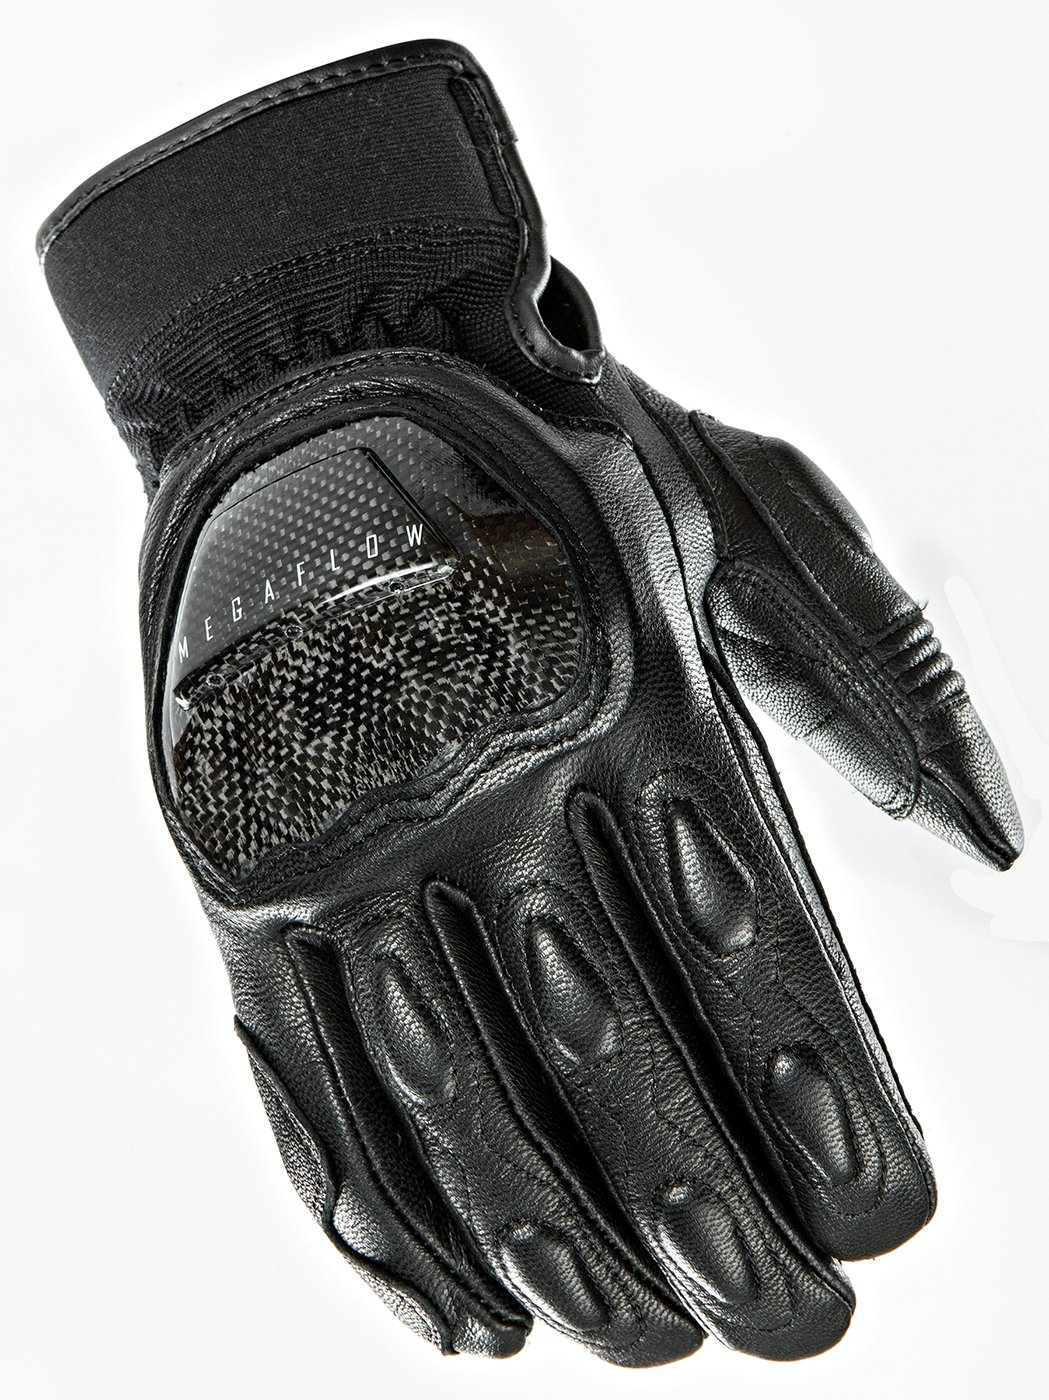 Motorcycle gloves cruiser - The Joe Rocket Speedway Motorcycle Gloves Are A Perfect Match For Any Biker Who Is Looking For Riding Gloves To Protect Their Hands